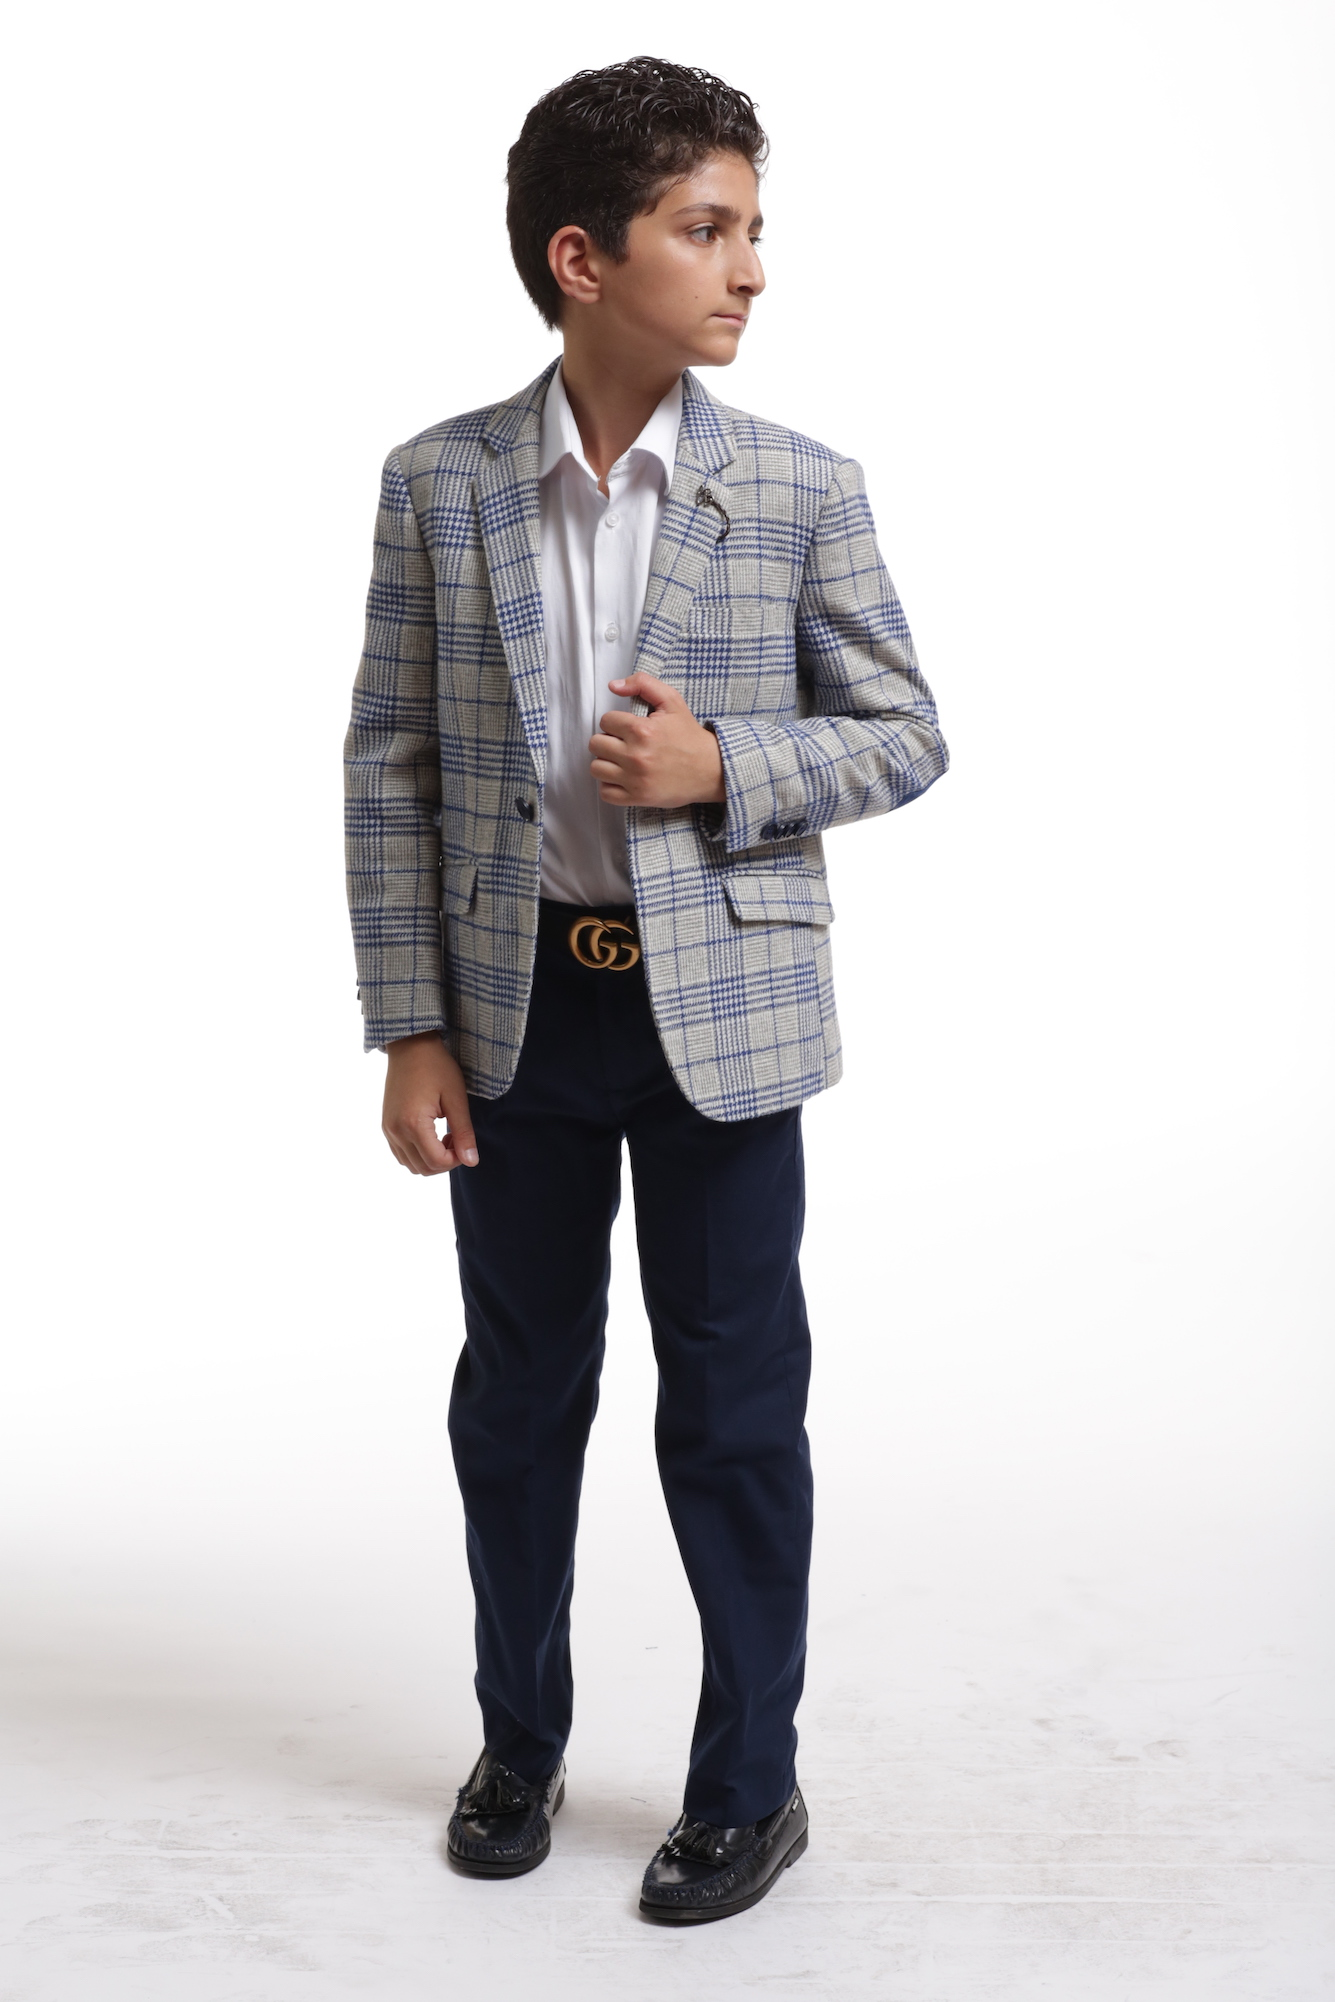 Elie Balleh Royal Grey Plaid Boys's Blazers - Sports Coat Jacket